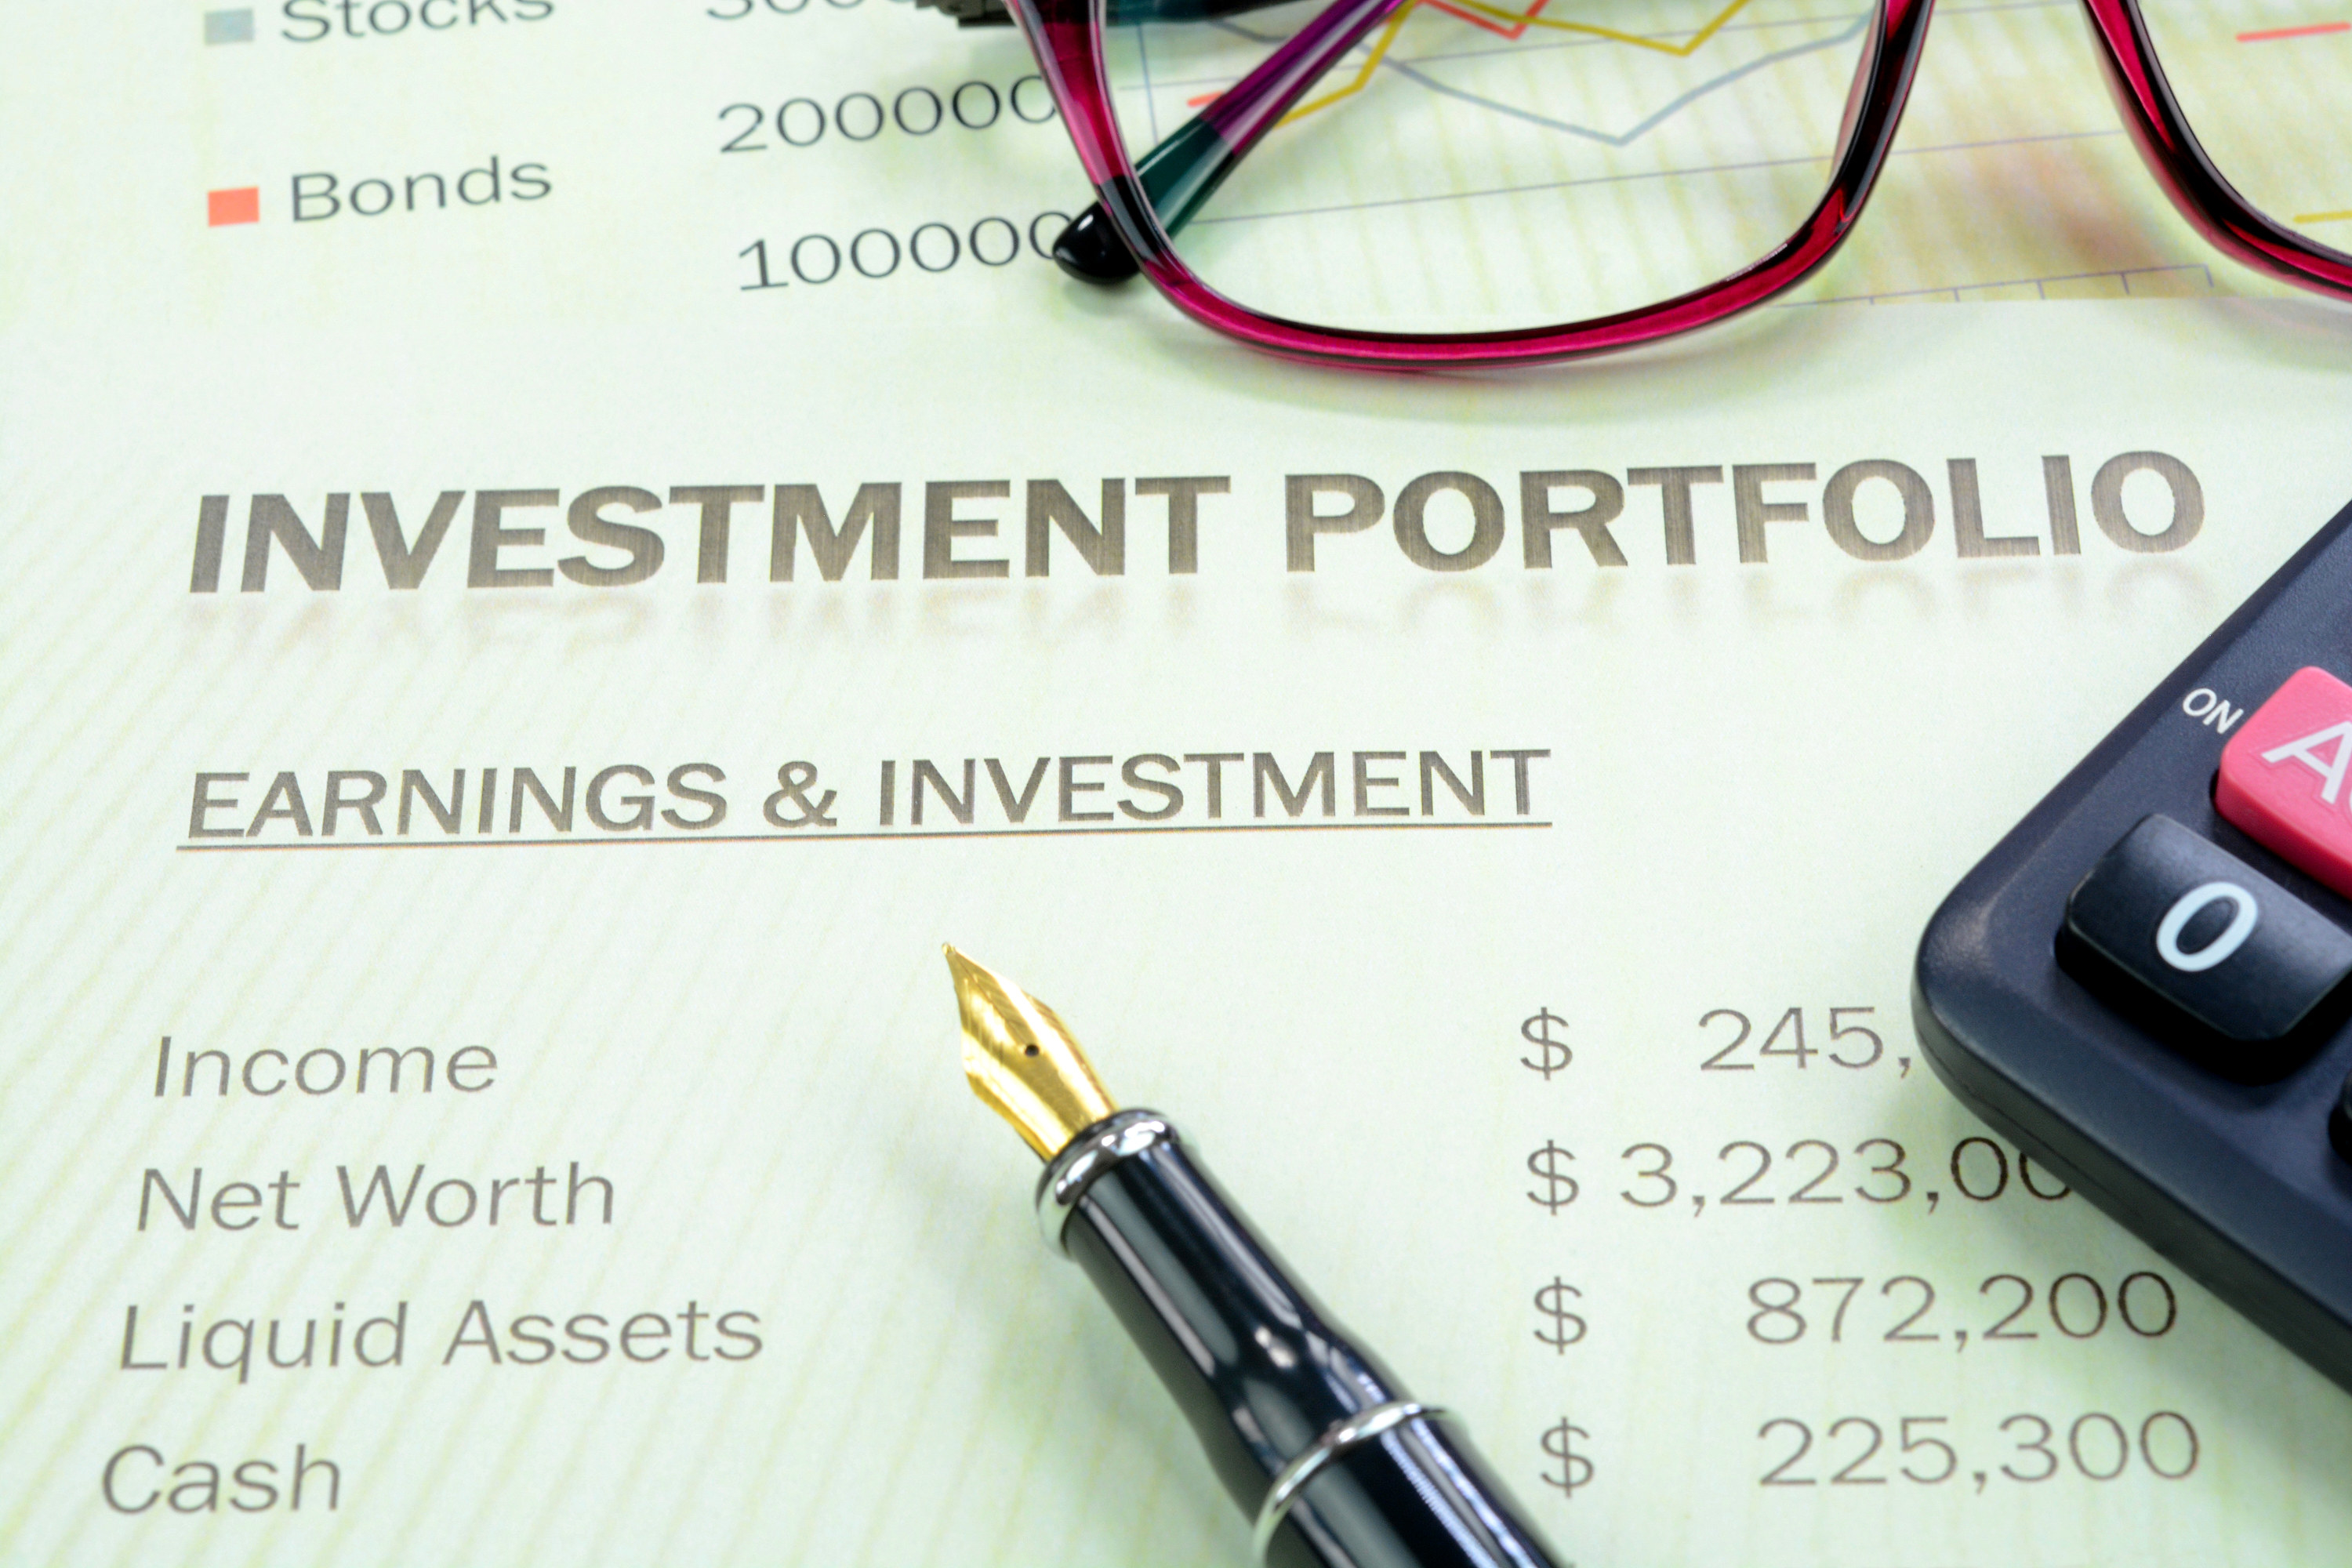 """Paper that says """"investment portfolio"""" and lists earnings and investments"""